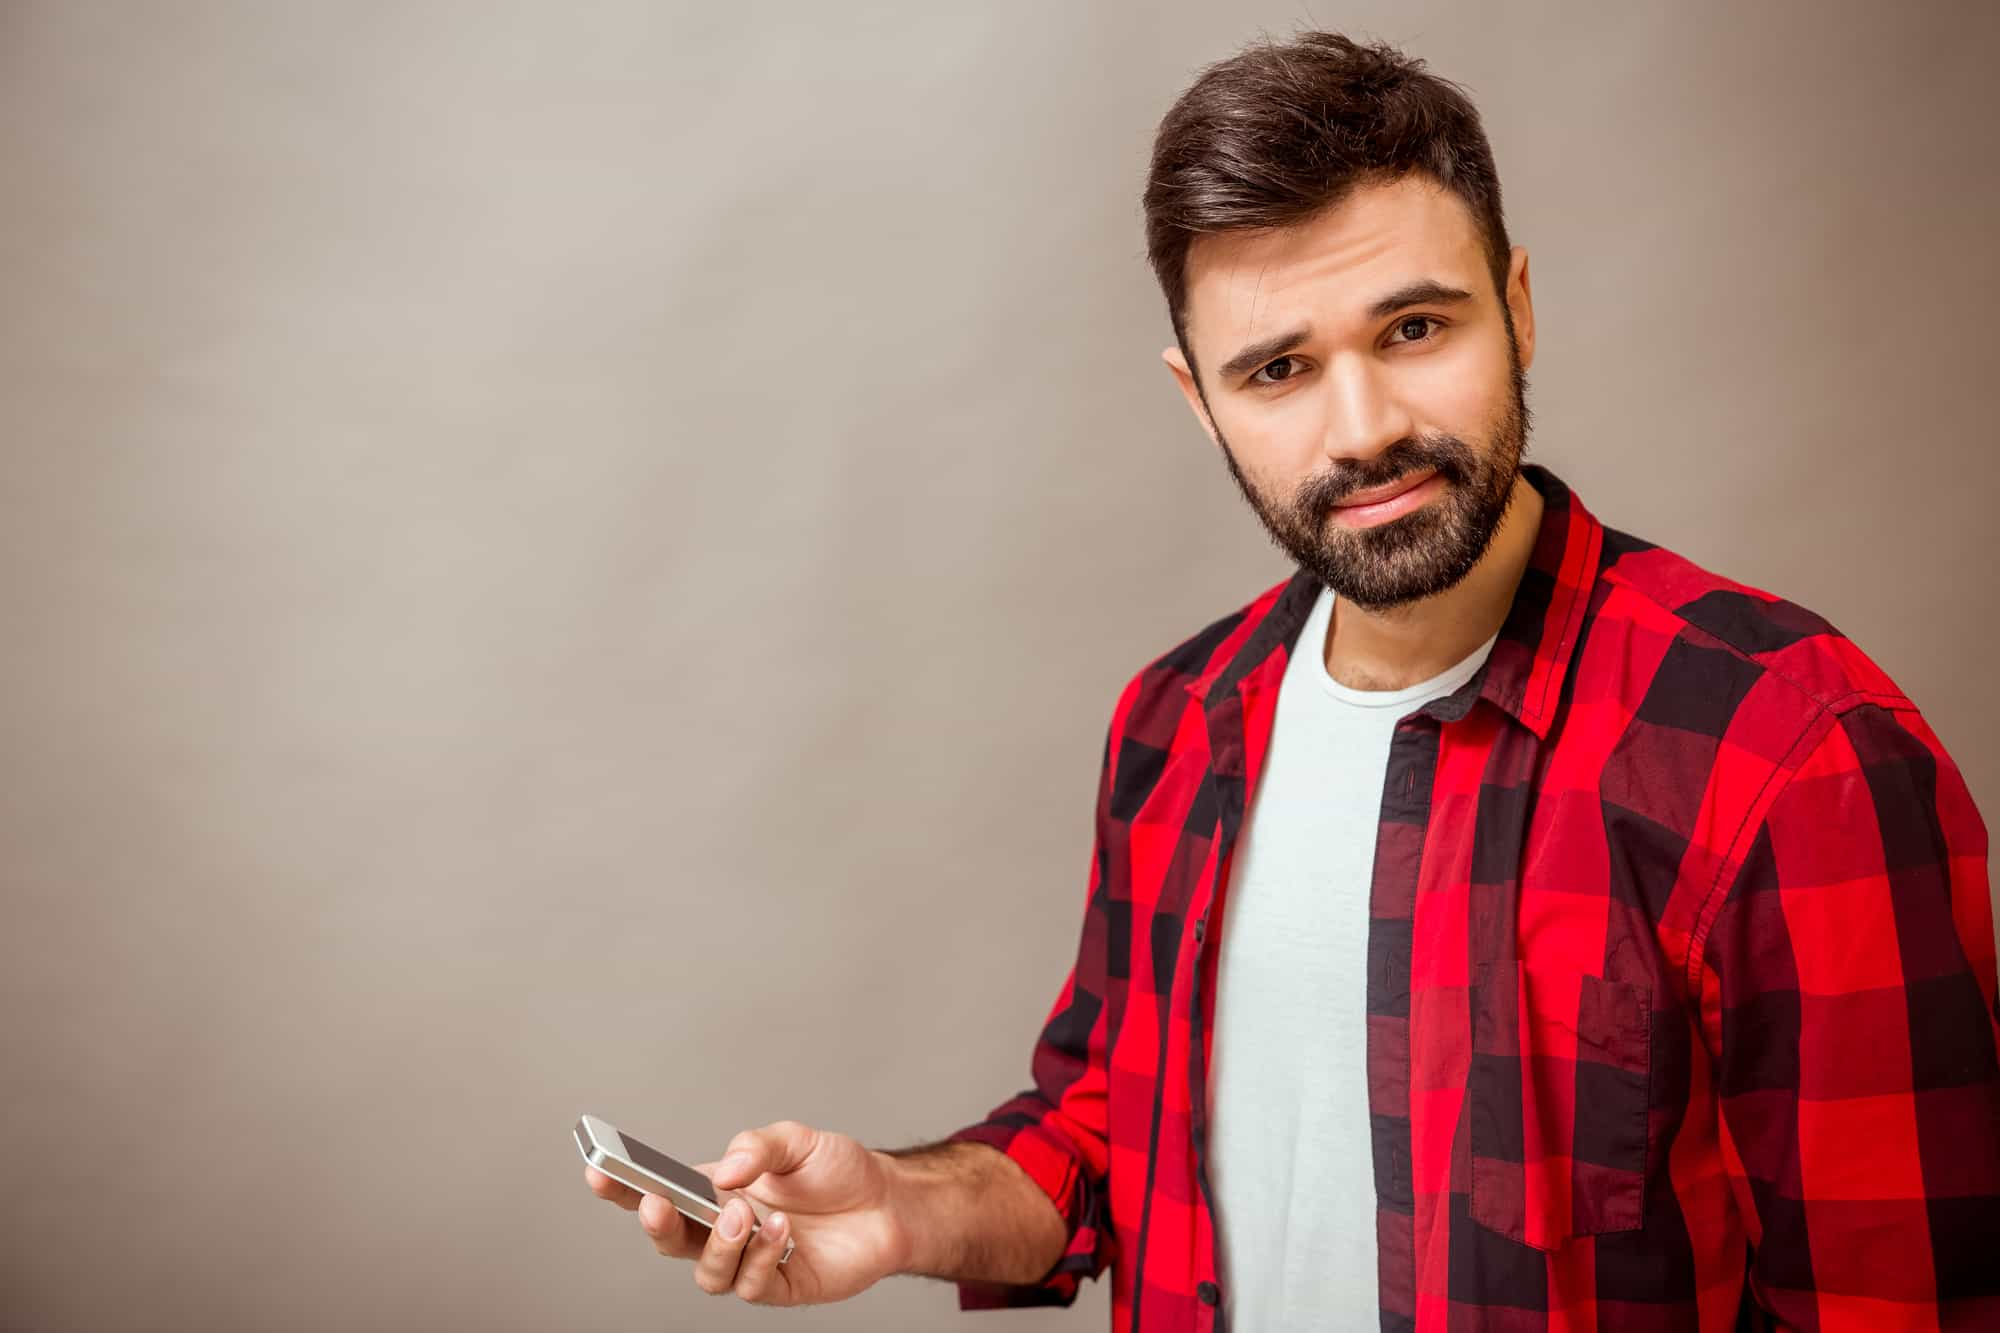 Beautiful young man in a checkered shirt, smartphone in hand, expressing